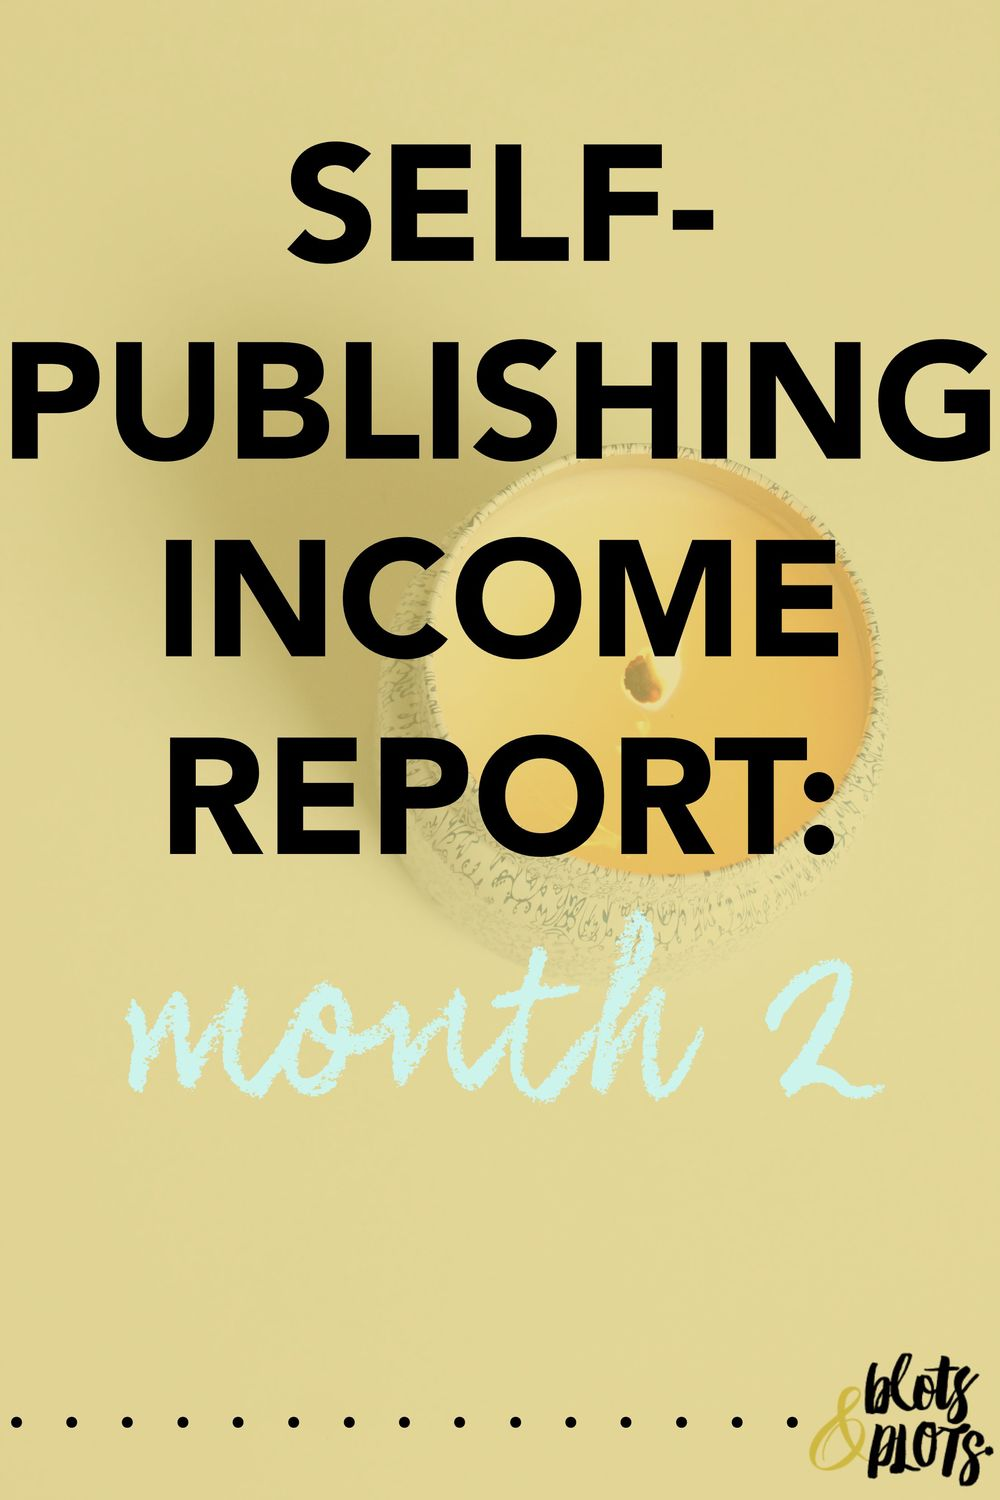 self-publishing income report